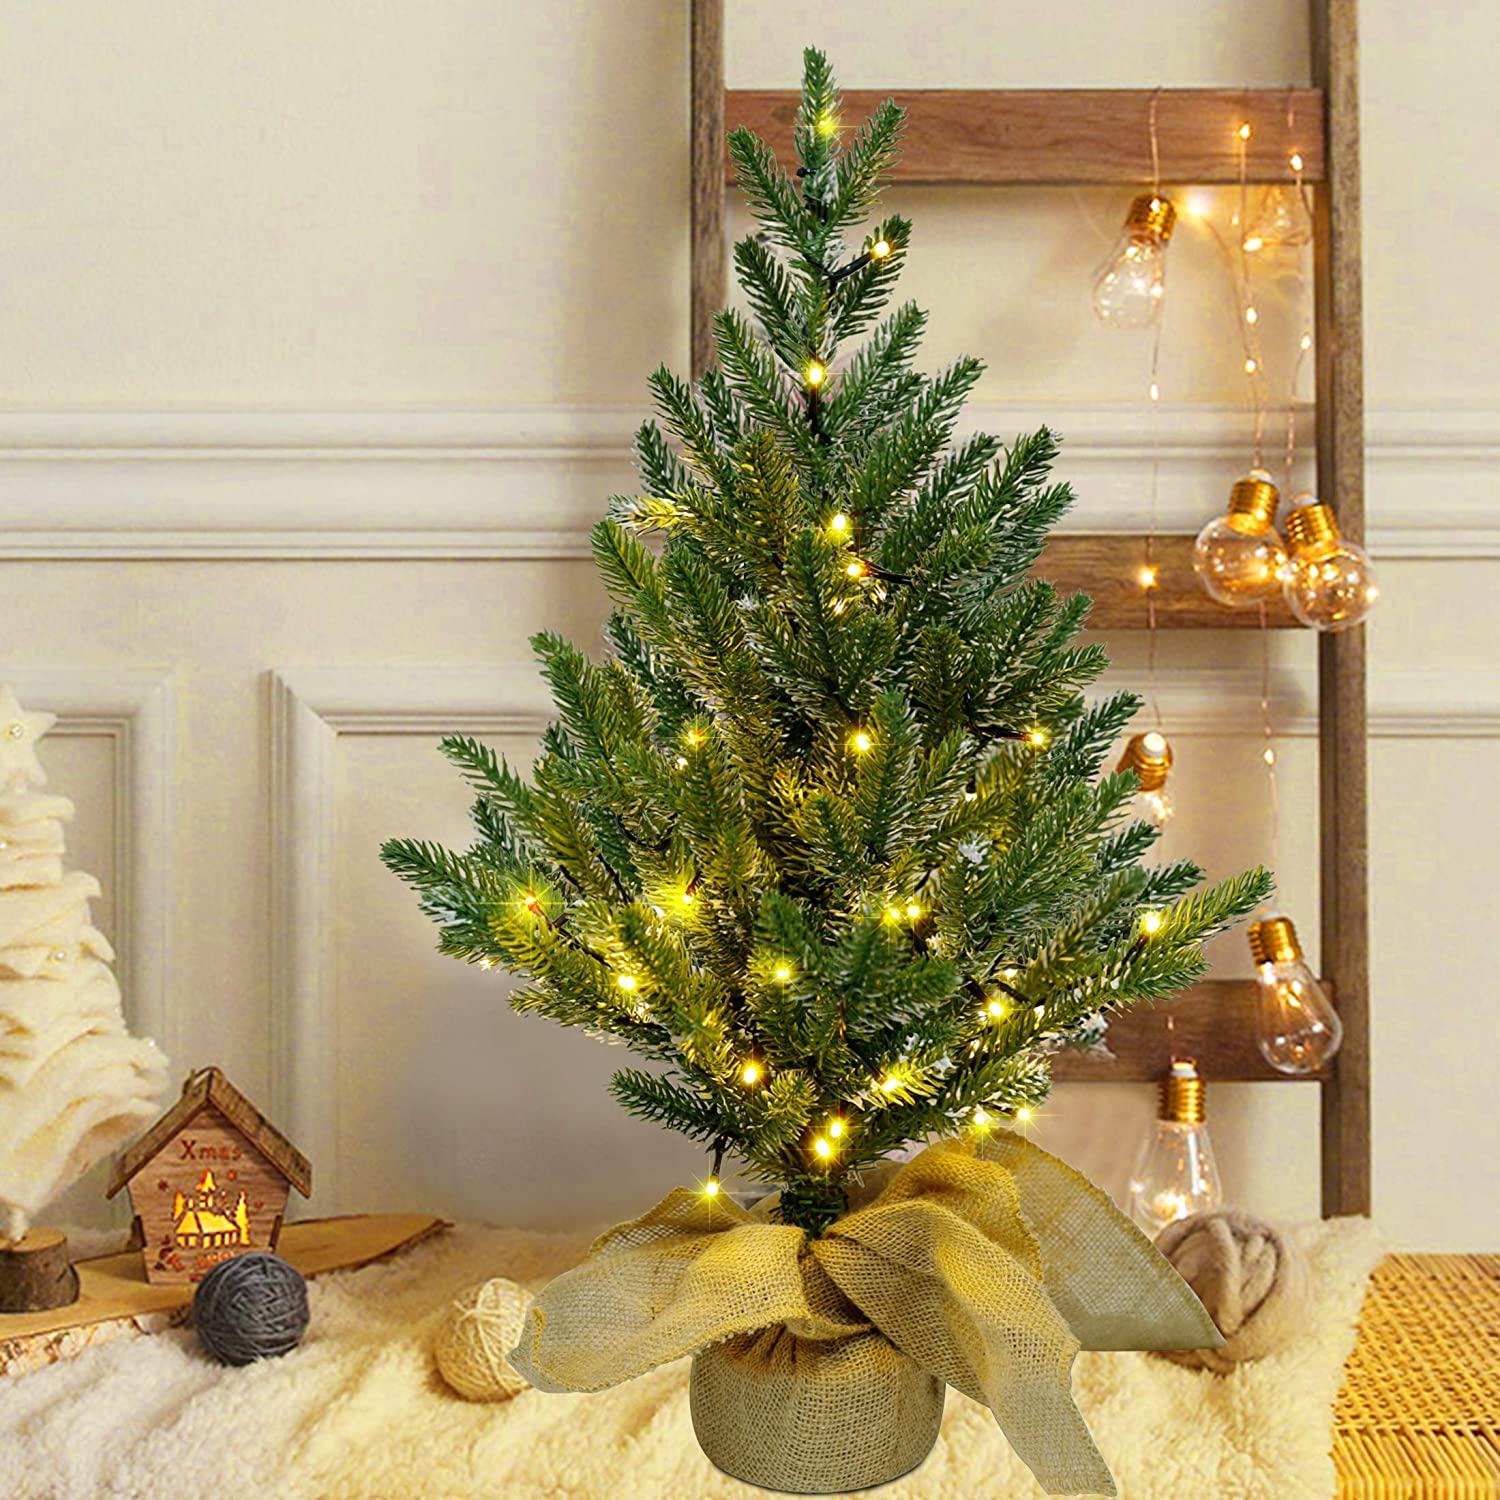 Juegoal 24Inch Pre-lit Christmas Pine Tree, with 50 Warm White Fairy Lights Tabletop Artificial Tree, Small Light up Pine Tree with Burlap Wooden Base for Xmas, Spring Home Decorations